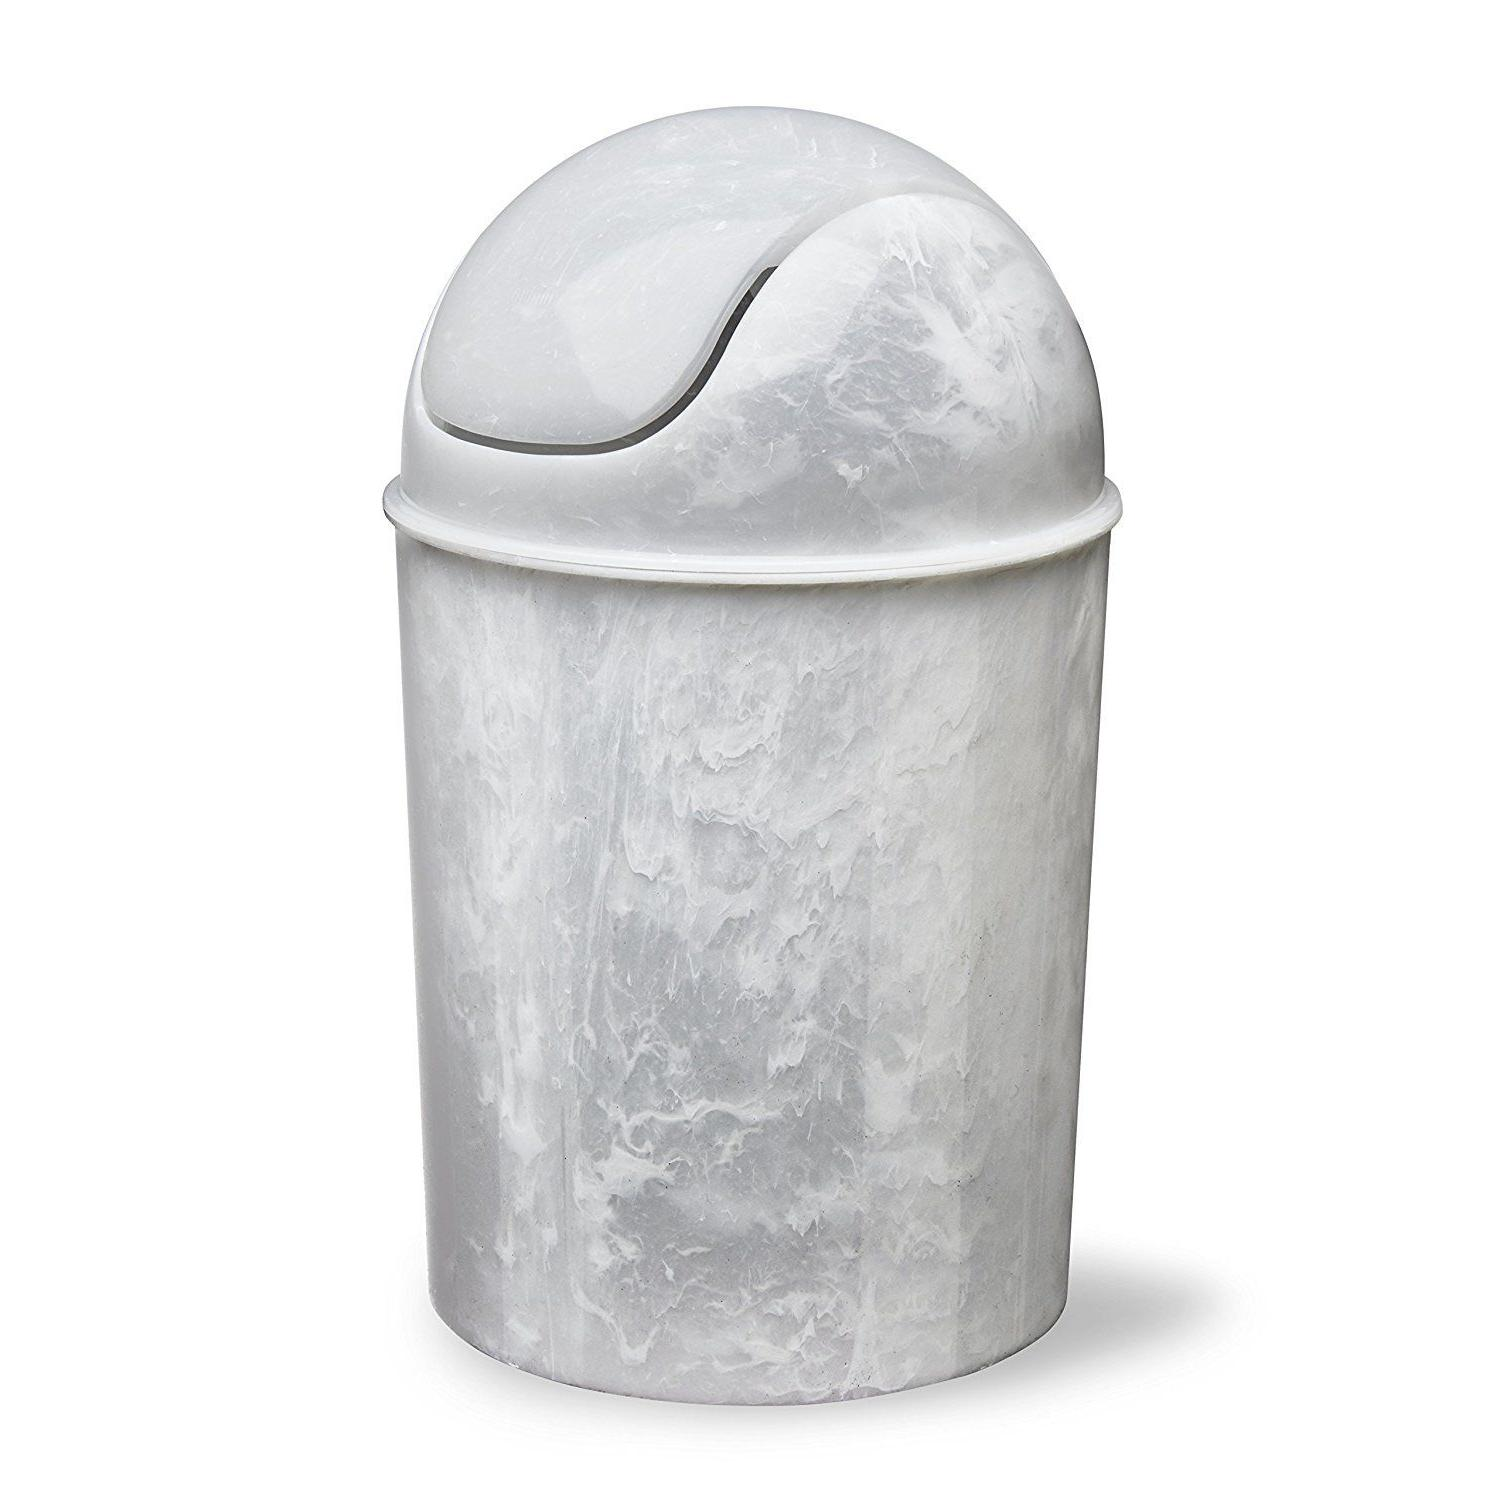 Waste Garbage Basket Trash Can For 1 1/2 Gallon with Swing Lid